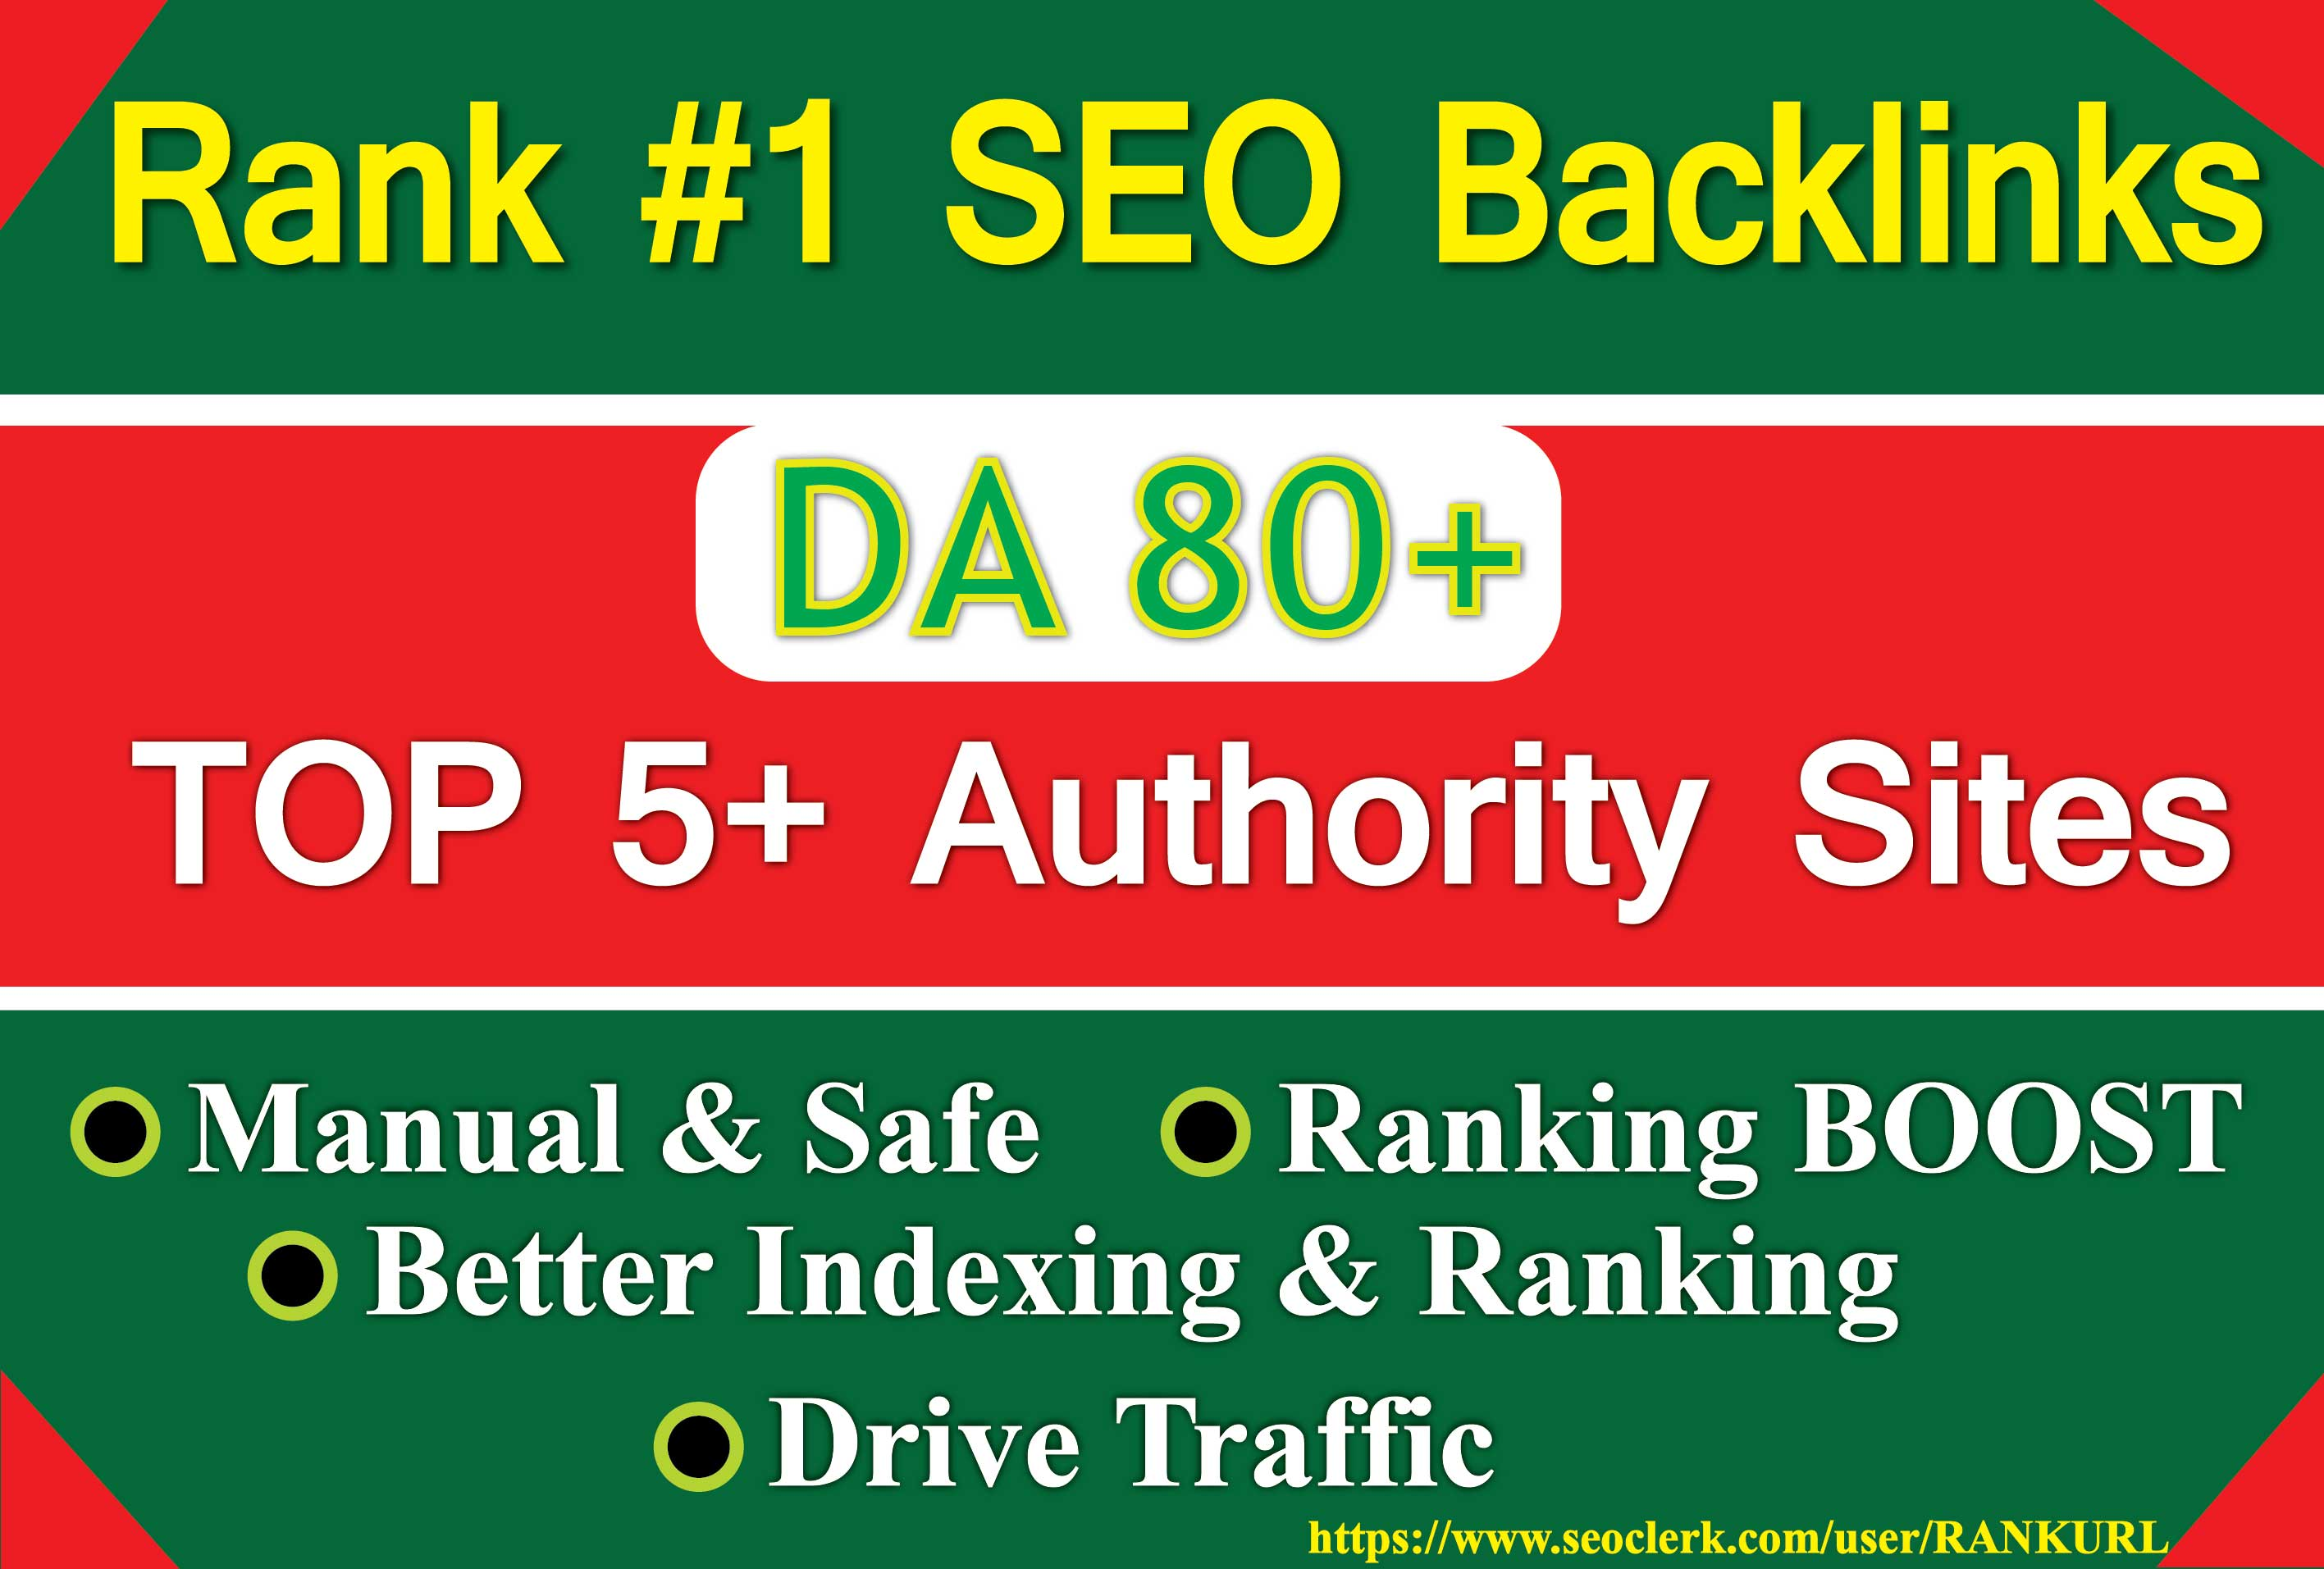 Boost your Website or Brand 30 SEO Backlinks by 5 Top Authority Sites- Bookmarking,  SEO Signals